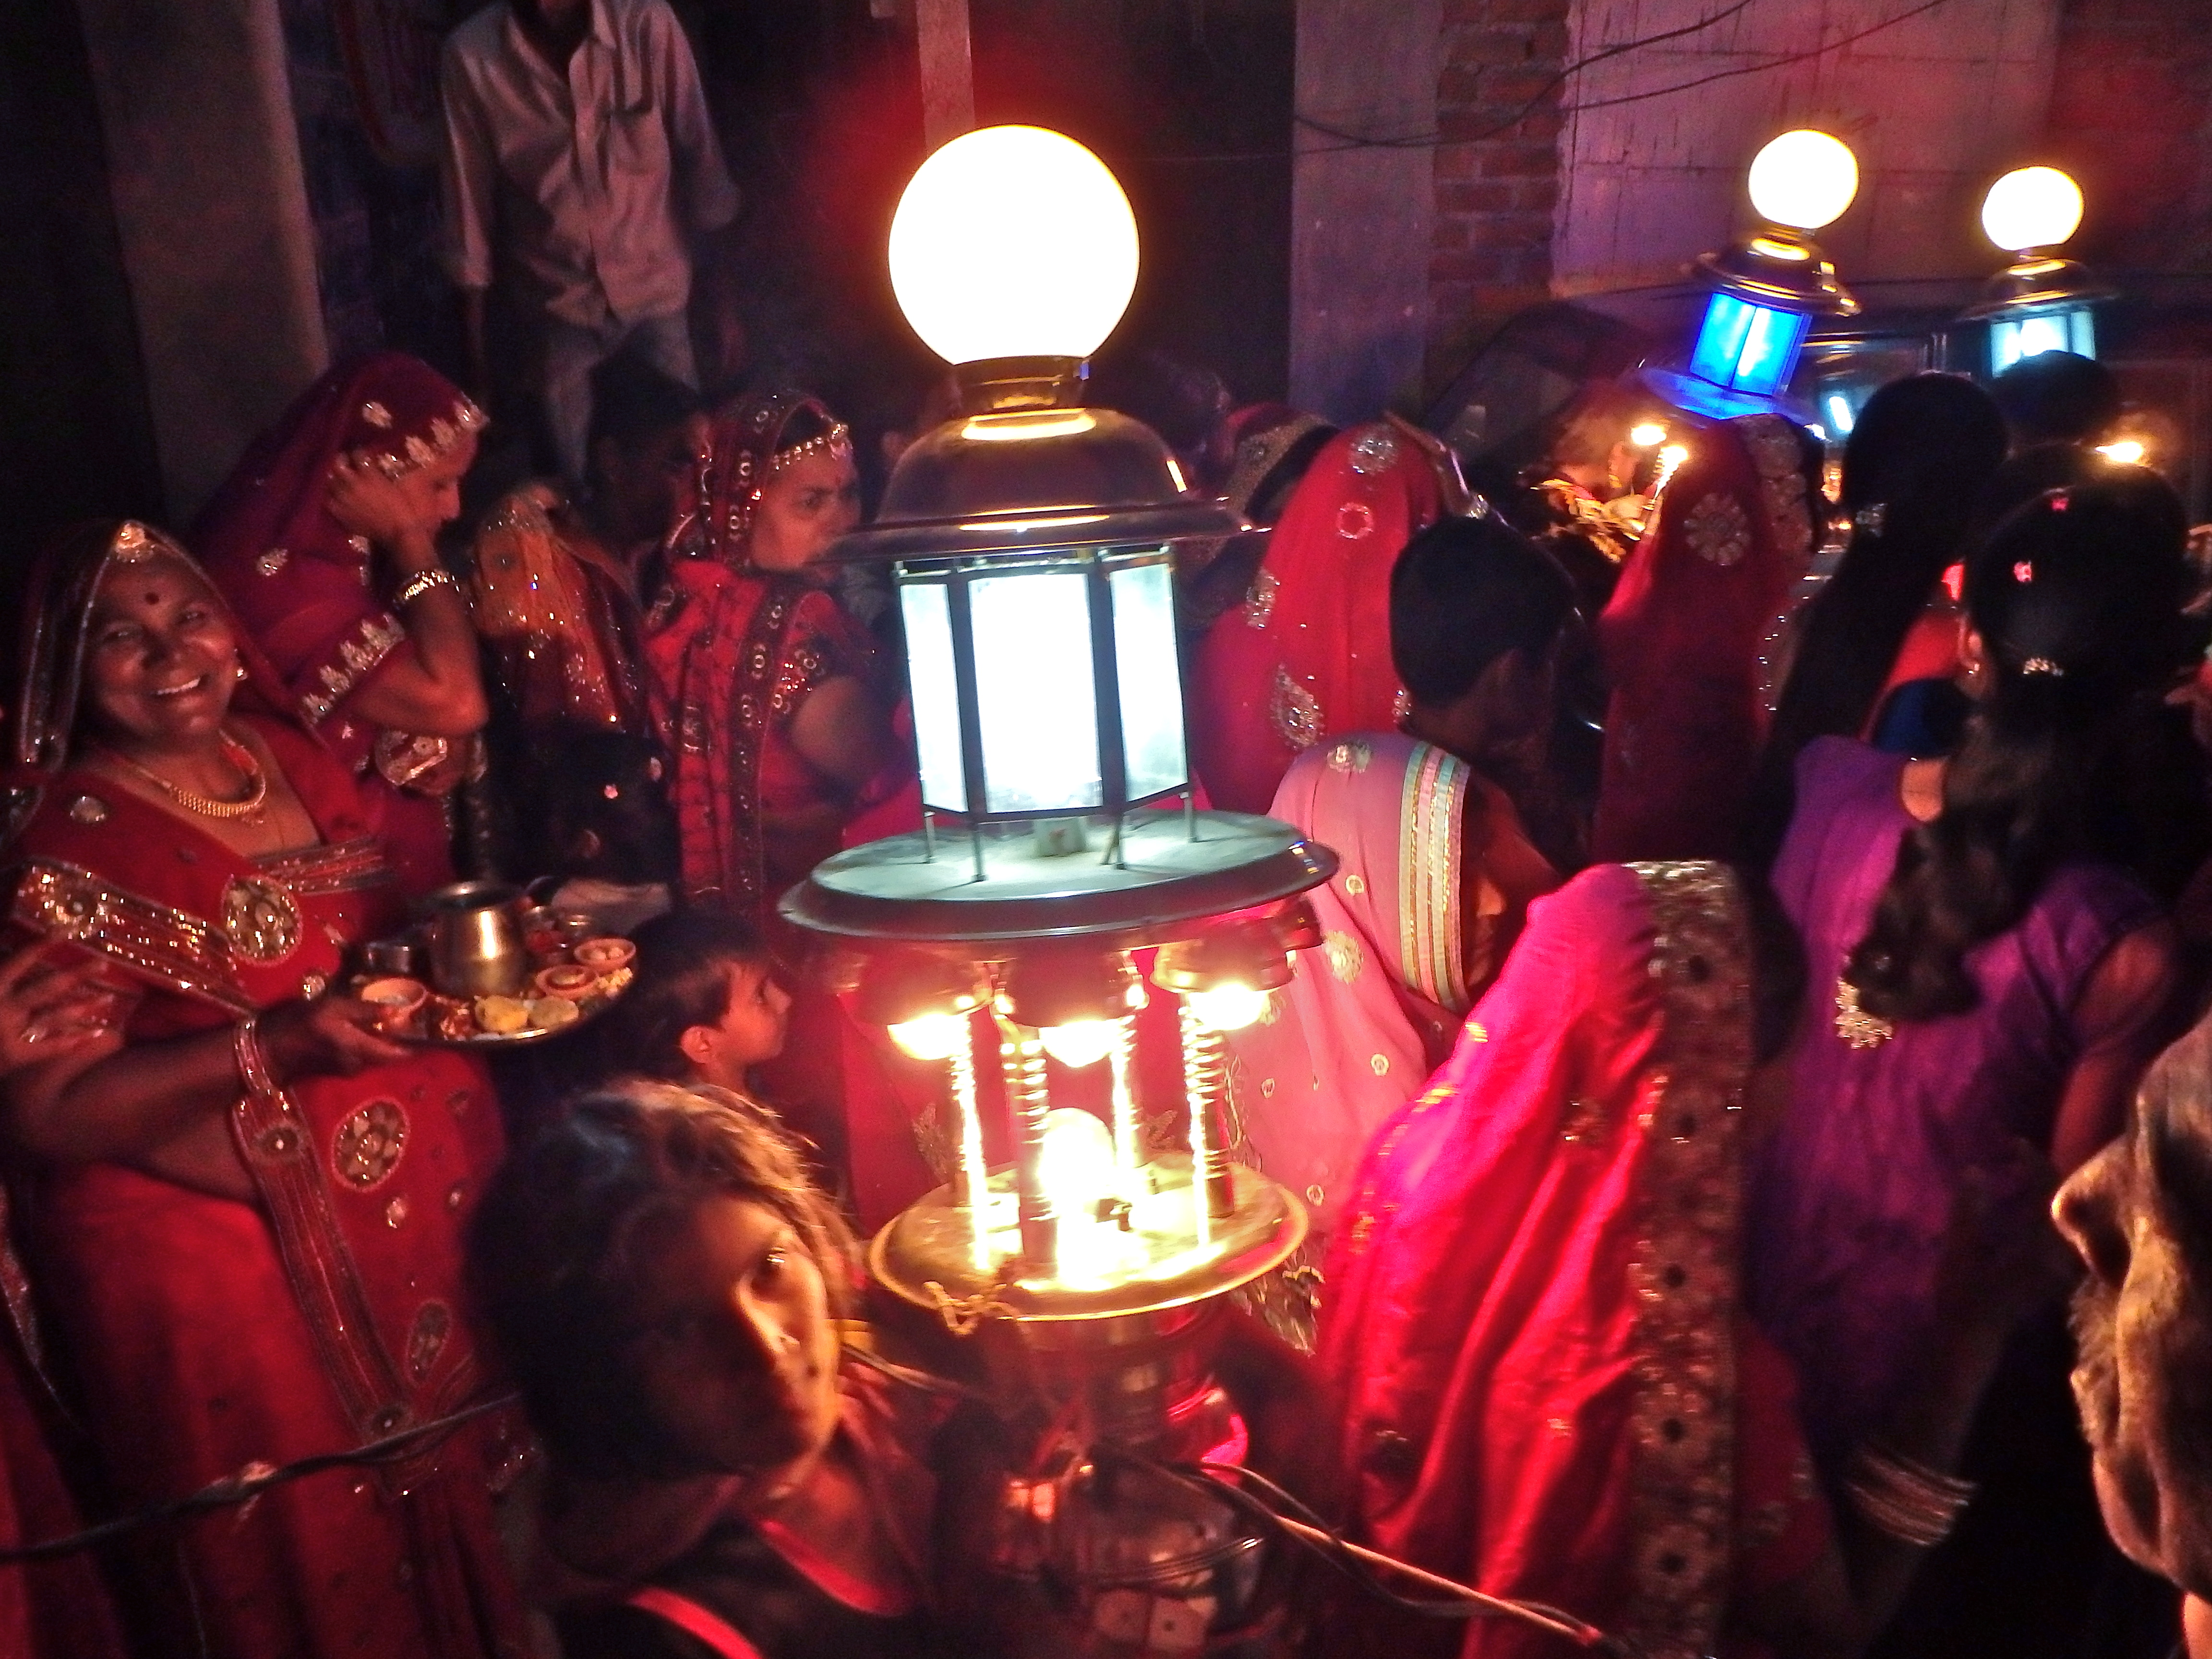 indian culture in pushkar wedding procession in india what to see in india best places to visit in india